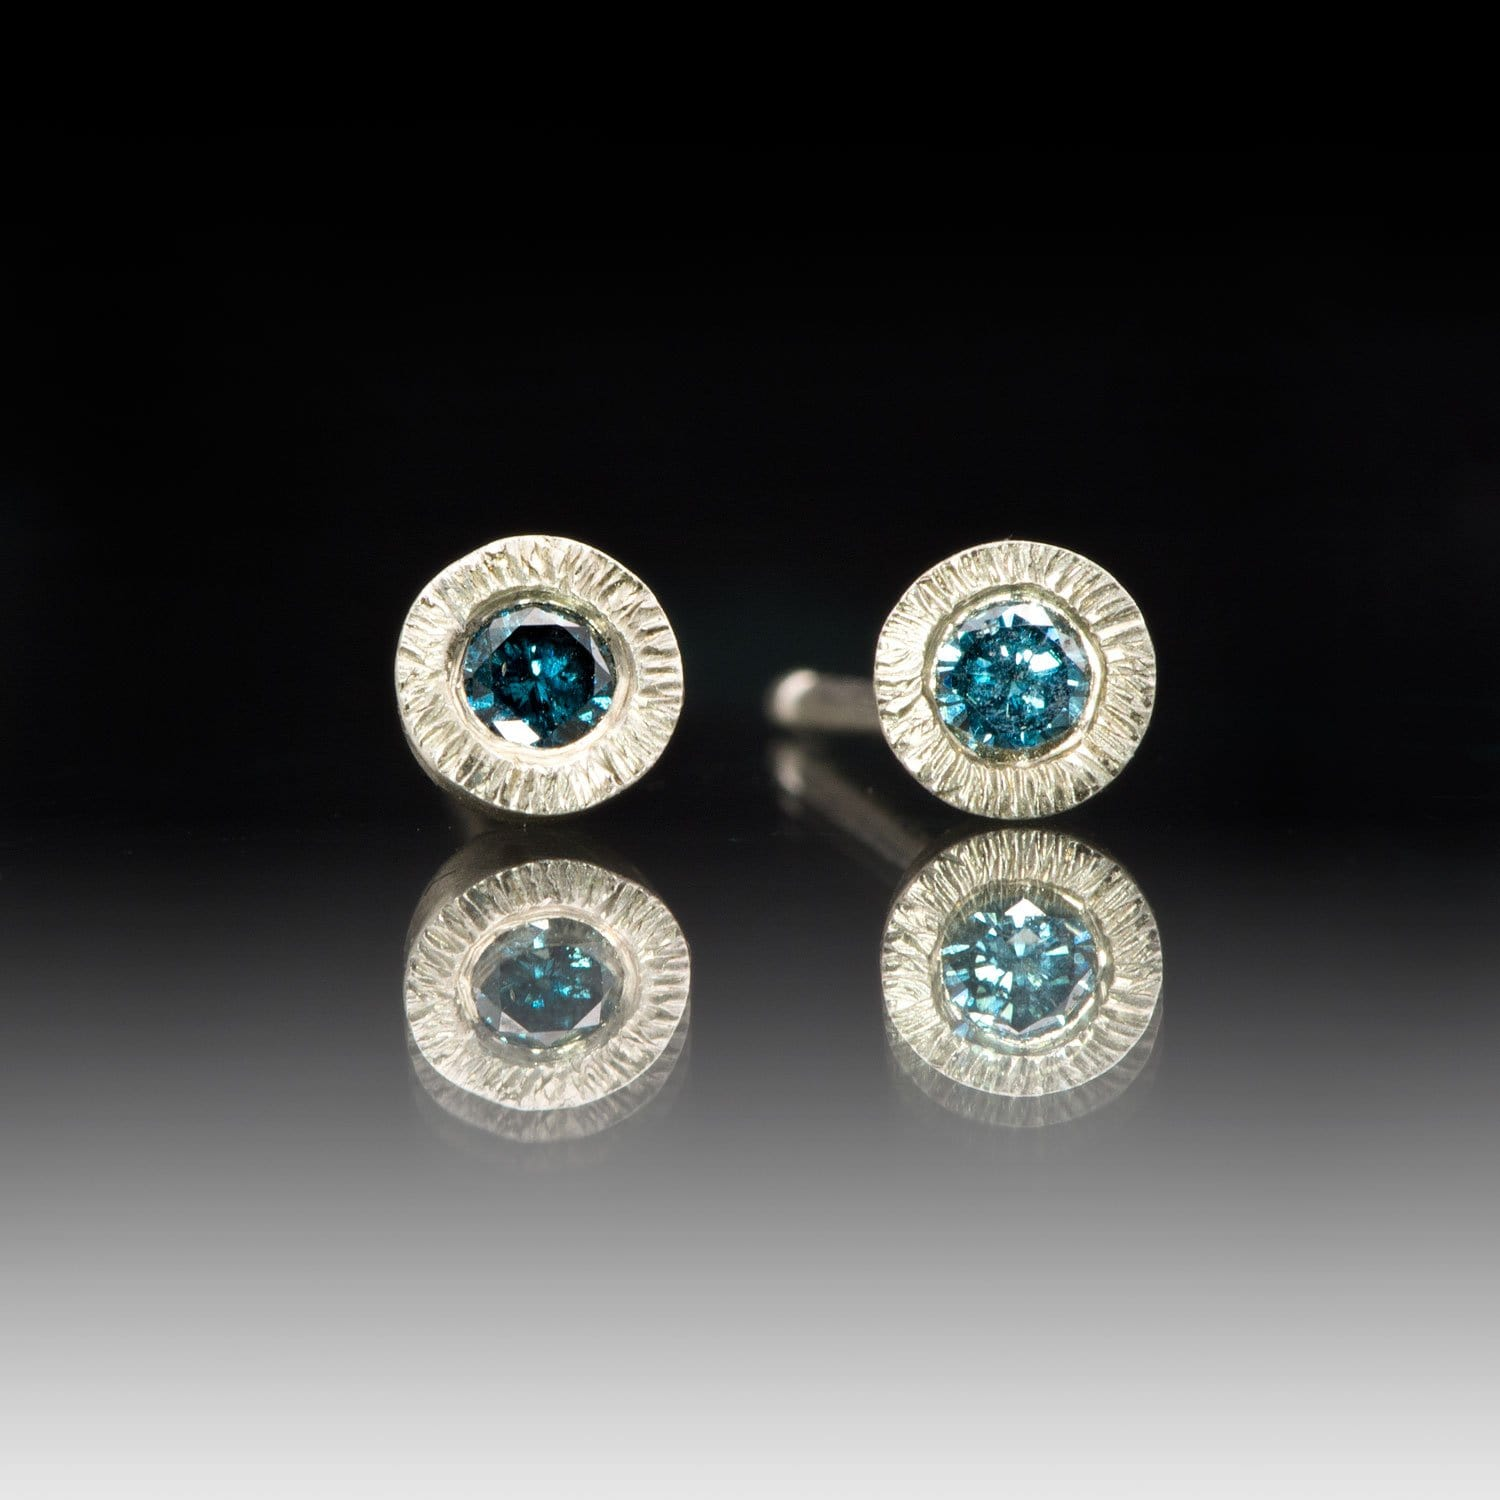 Teal Blue Damond Tiny Textured Sterling Silver Stud Earrings, Ready to Ship